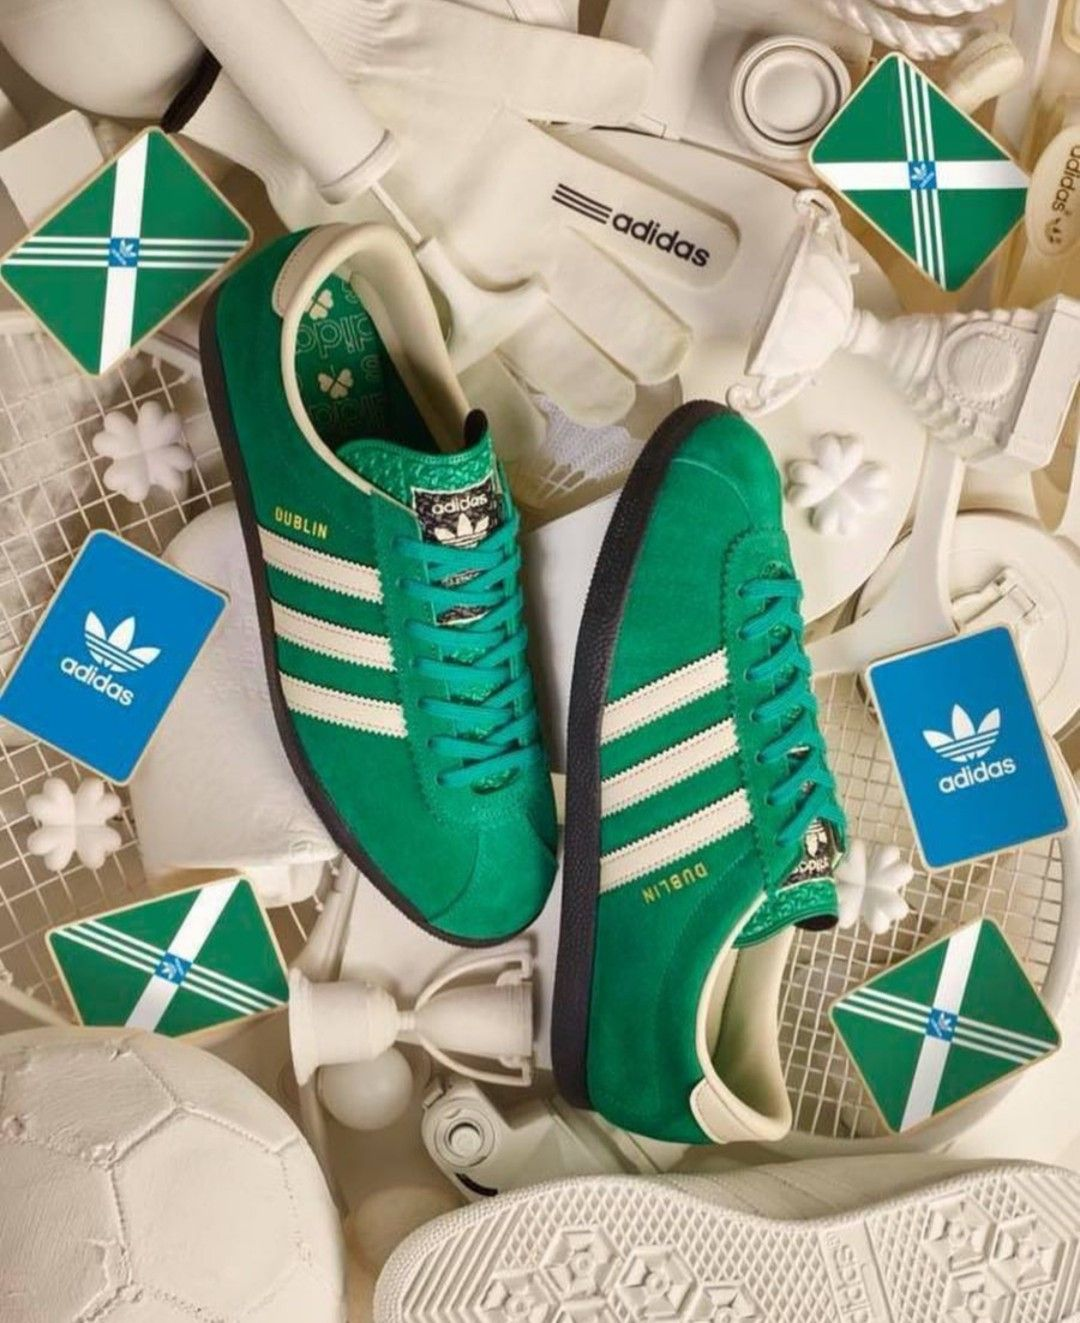 size 40 arrives wholesale sales New Dublin | Adidas shoes, Adidas sneakers, Nike shoes